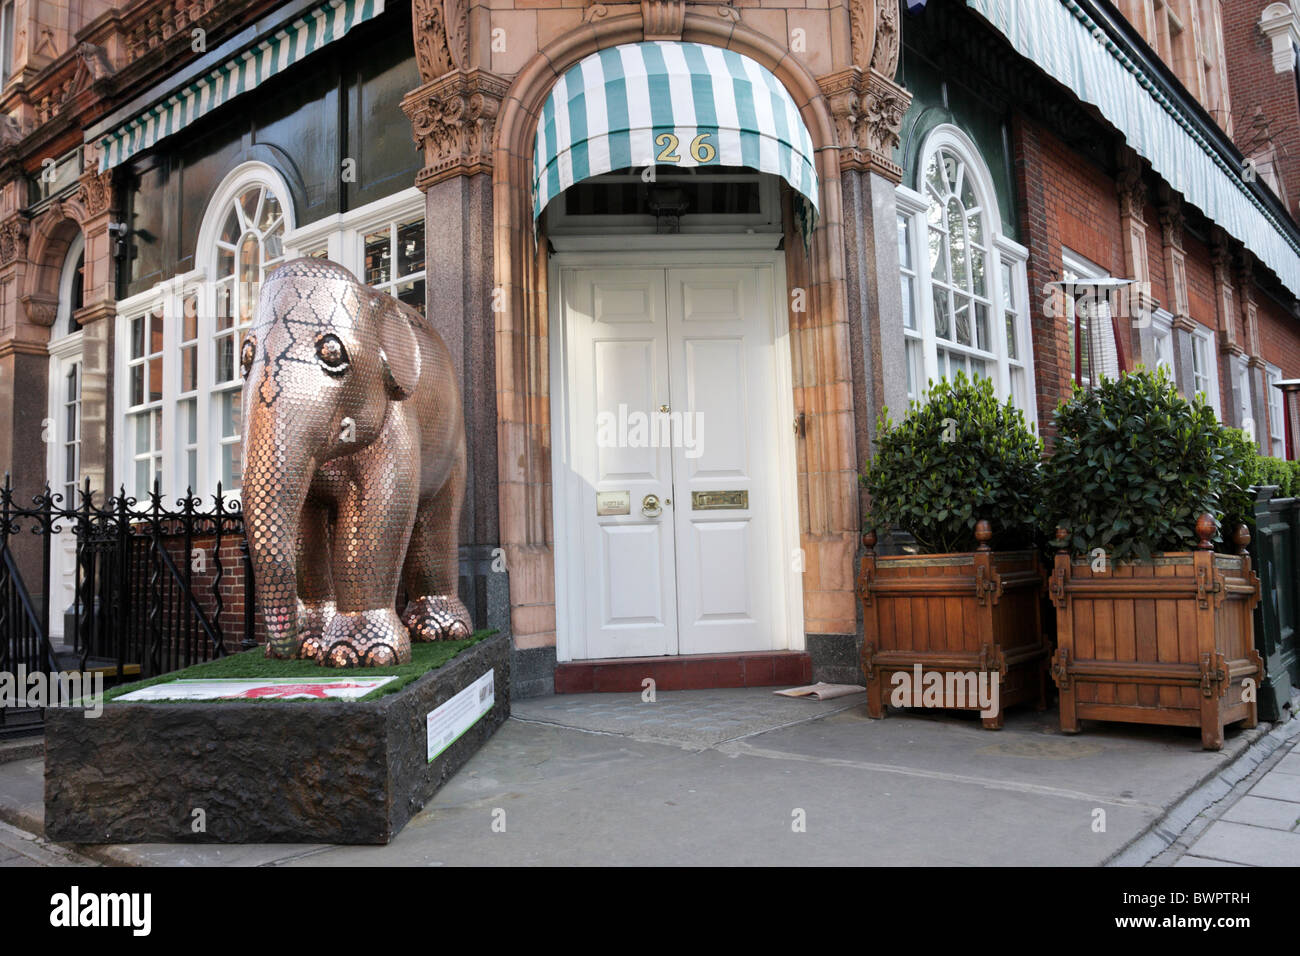 Main entrance to the famous Harry`s Bar in South Audley Street, a private members club serving Northern Indian cuisine. - Stock Image